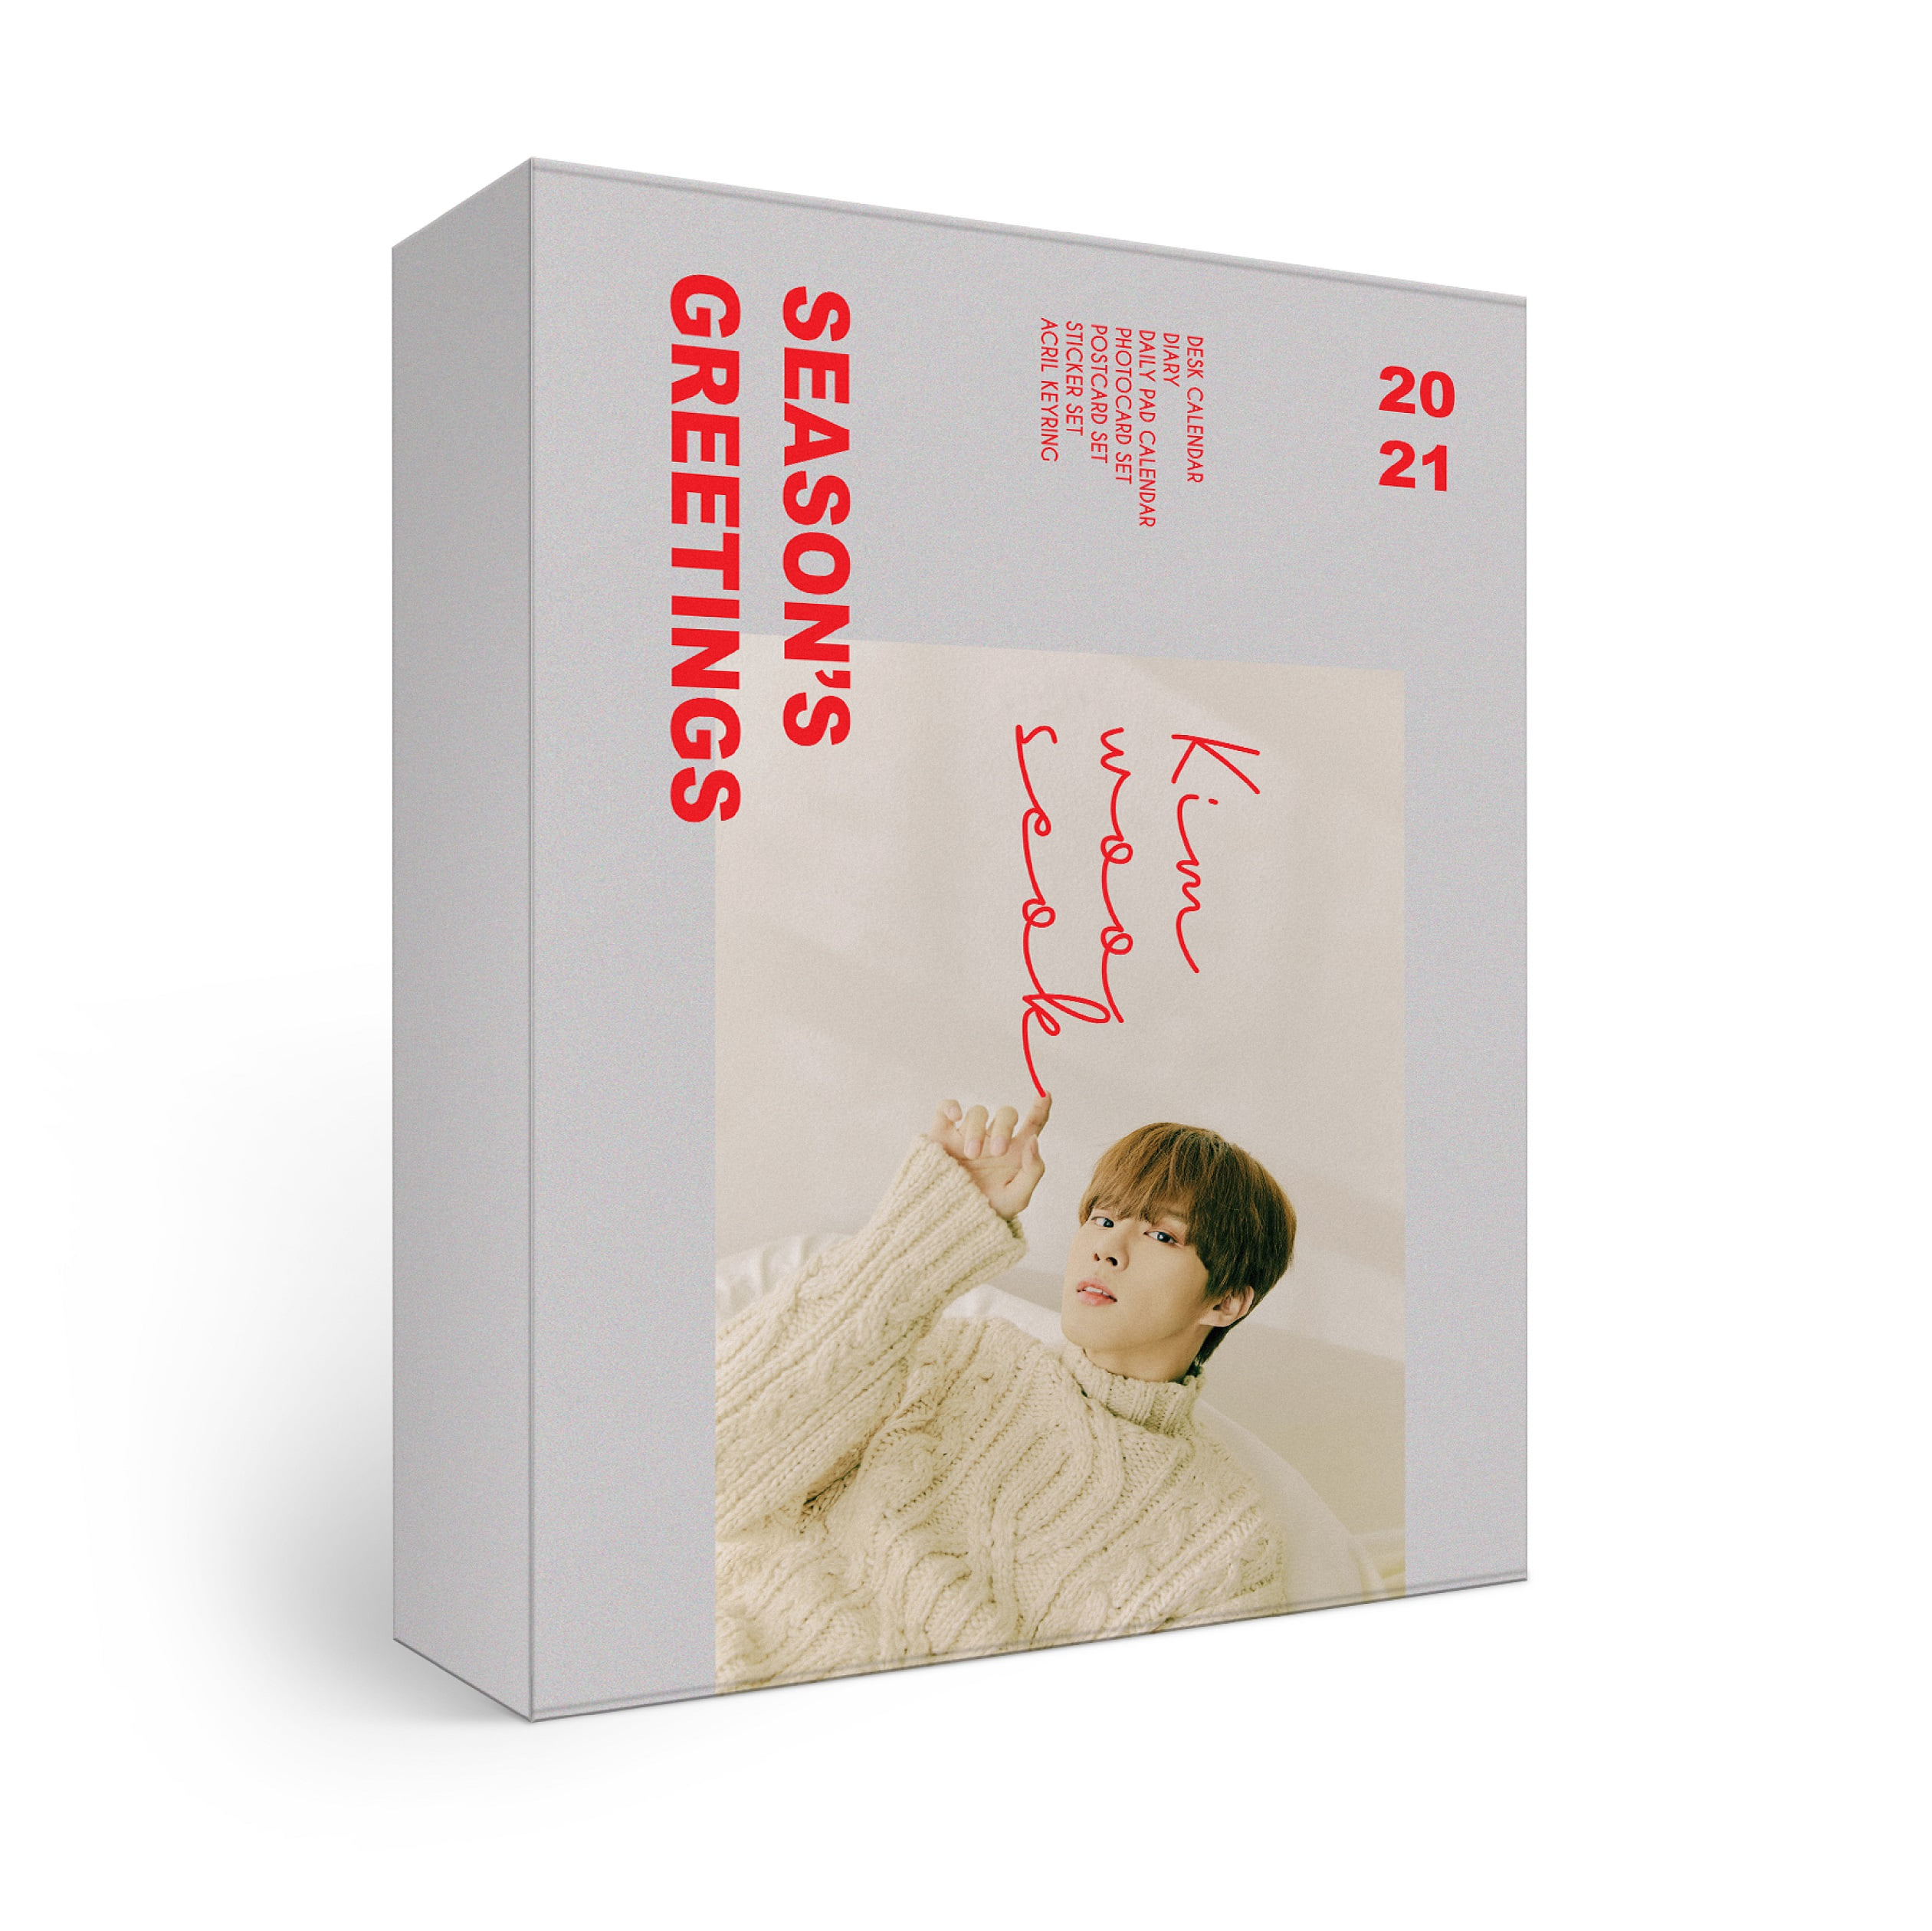 [PRE-ORDER] ★Provides KPOPSTORE Special Gift★ 김우석(KIM WOO SEOK) - 2021 SEASON'S GREETINGS (*No Poster)케이팝스토어(kpop store)